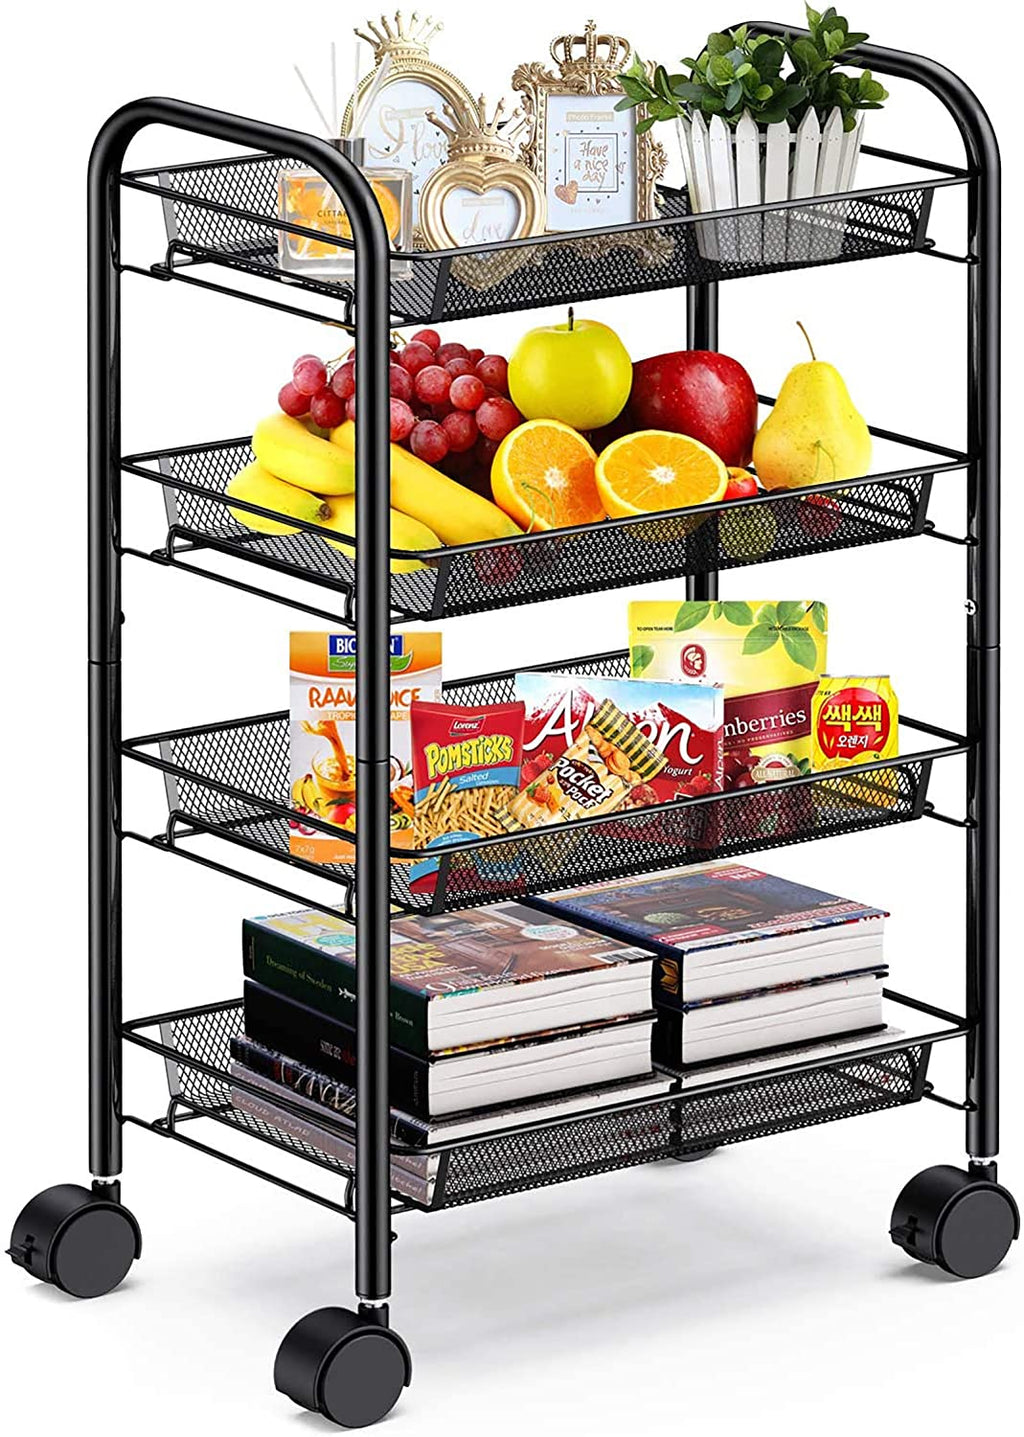 4-Tier Mesh Wire Rolling Cart Multifunction Utility Cart Metal Kitchen Storage Cart with 4 Wire Baskets Lockable Wheels for Home, Office, Kitchen by Pipishell (Black) - Tns super store